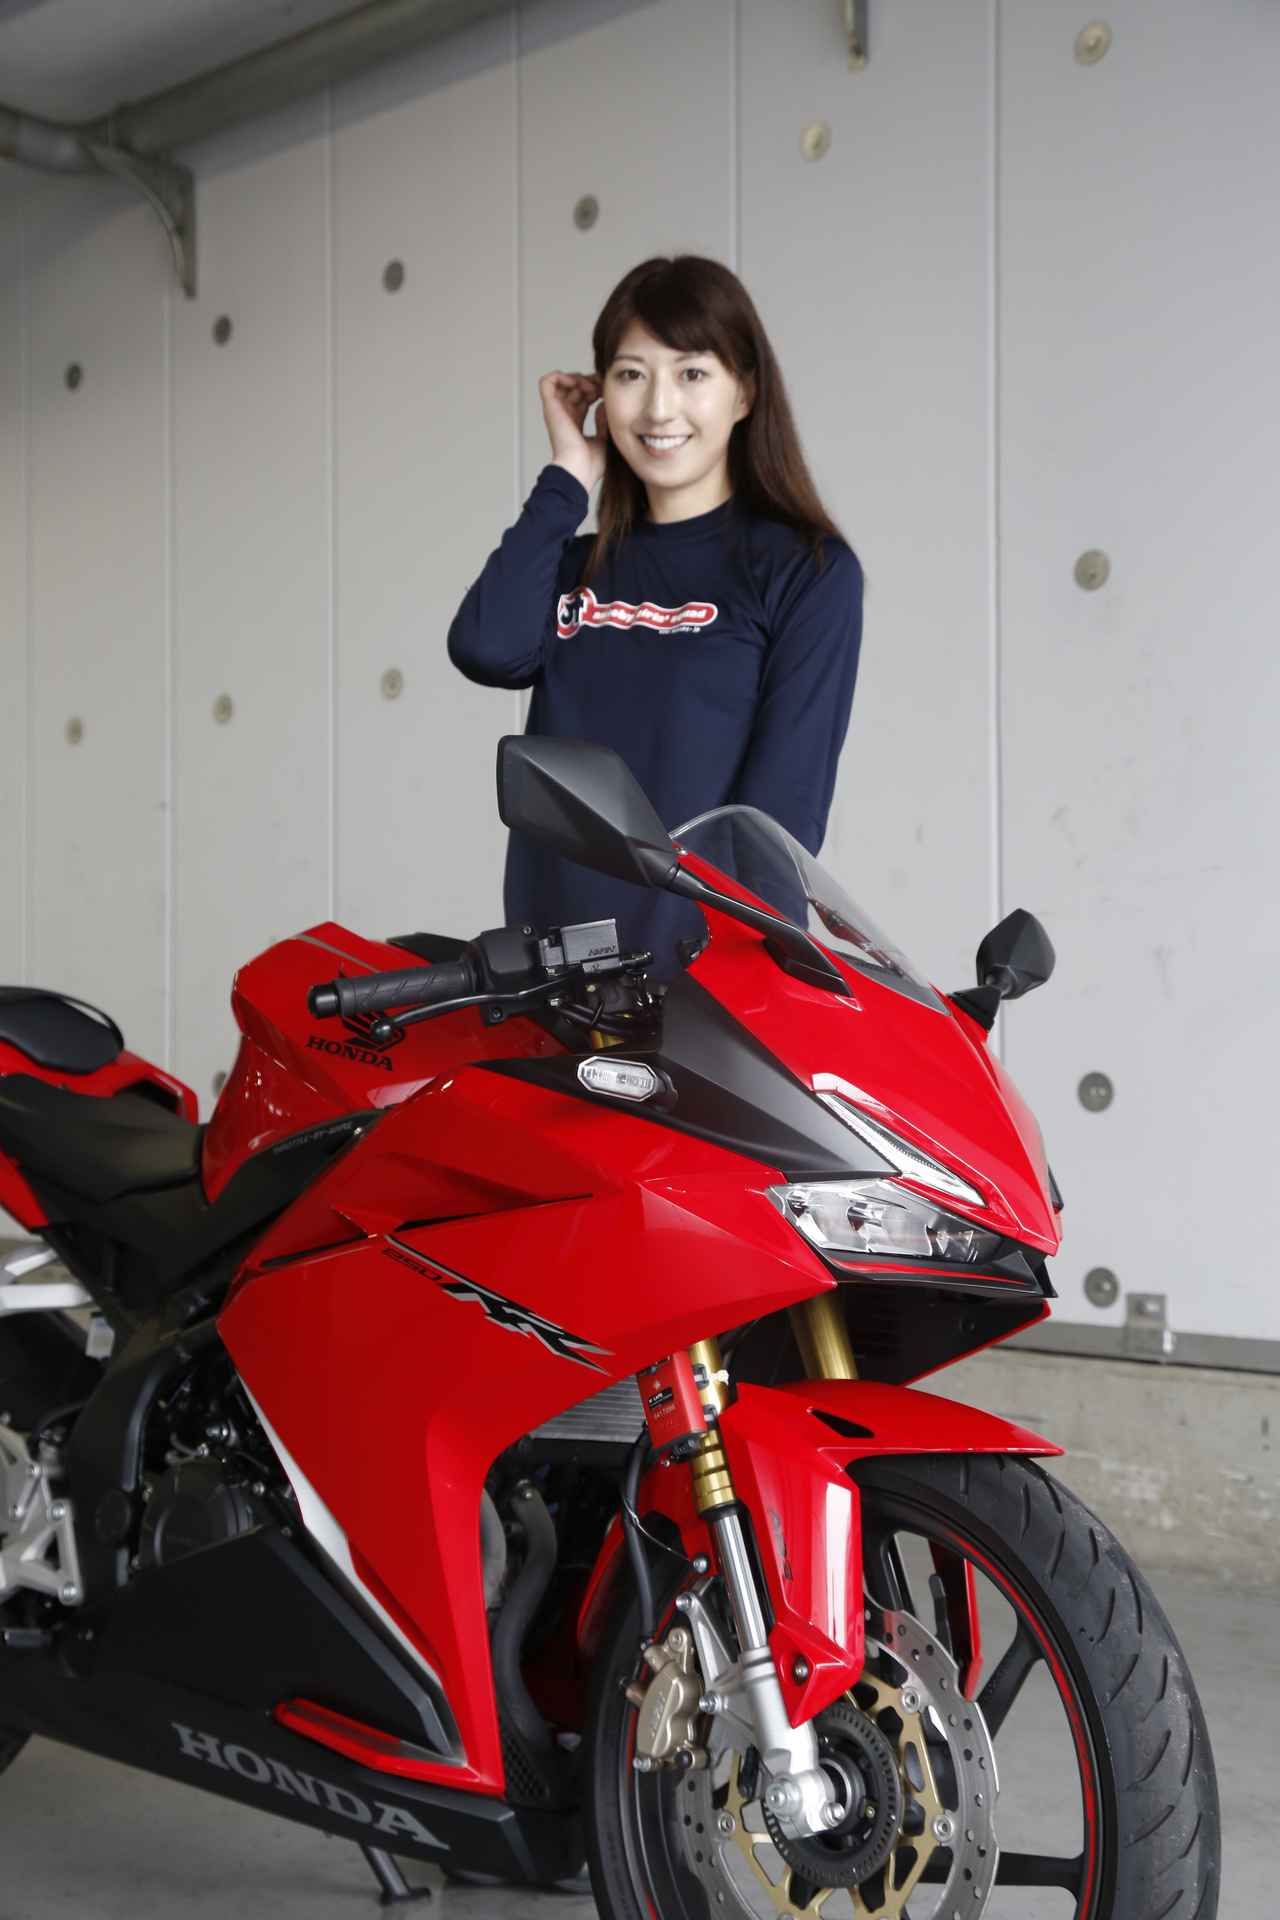 Images : 3番目の画像 - 大関さおり×HONDA CBR250RR - LAWRENCE - Motorcycle x Cars + α = Your Life.